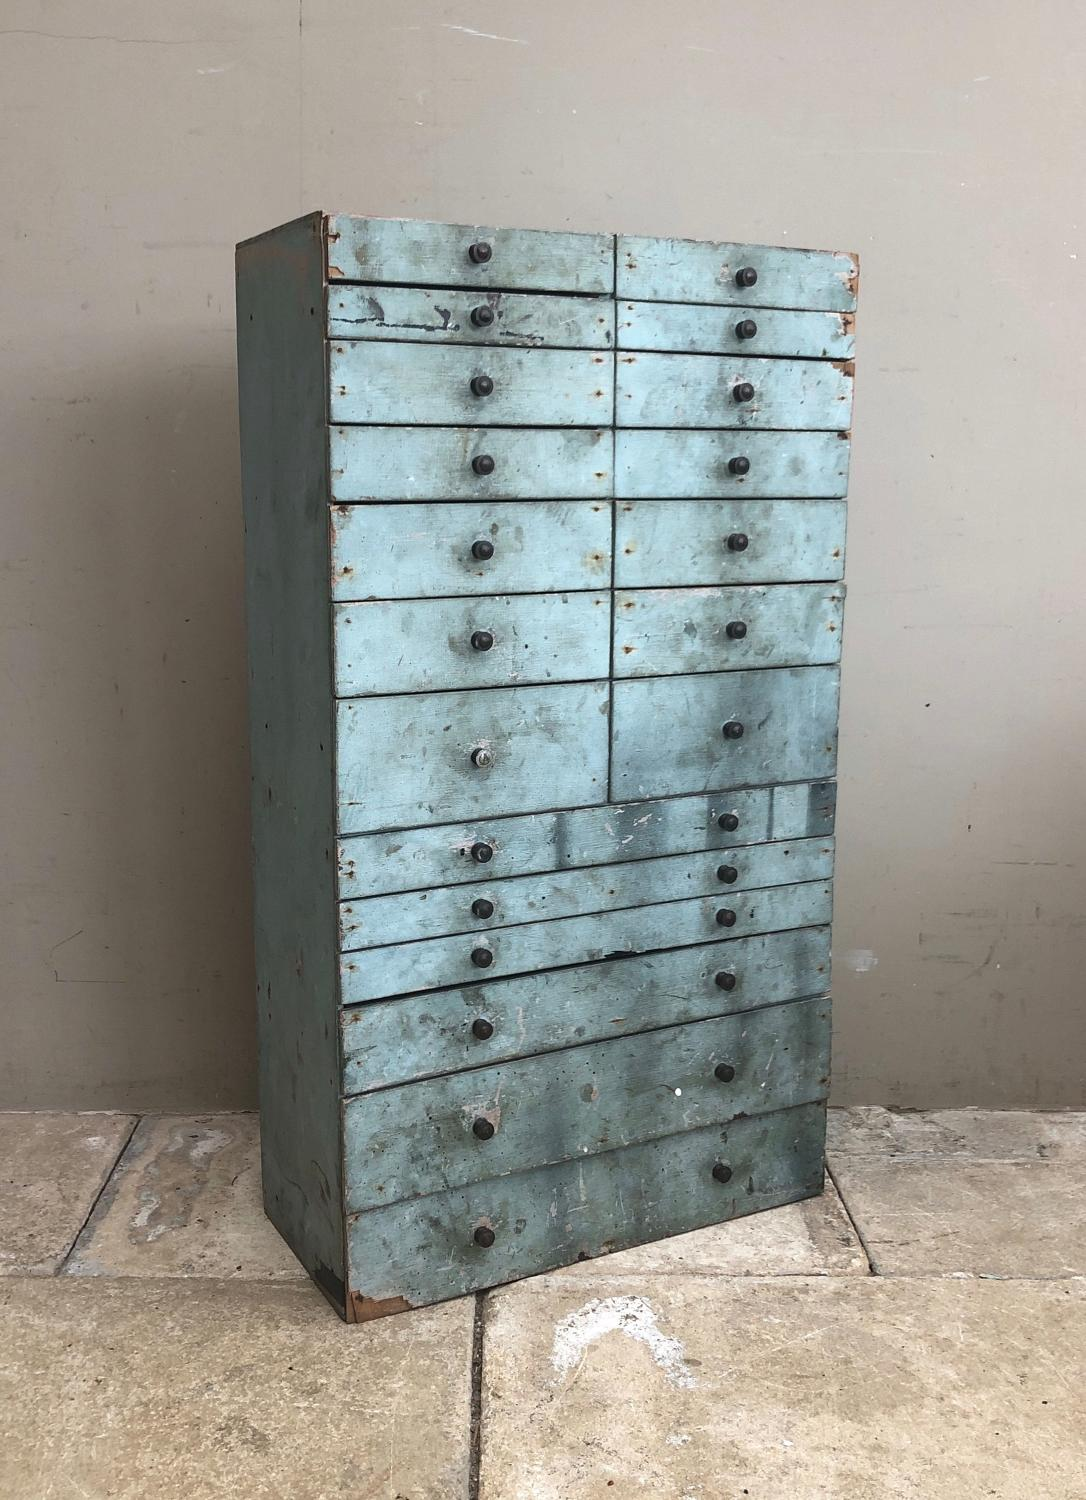 Early 20th Century Bank of Twenty Drawers in Pale Blue Original Paint